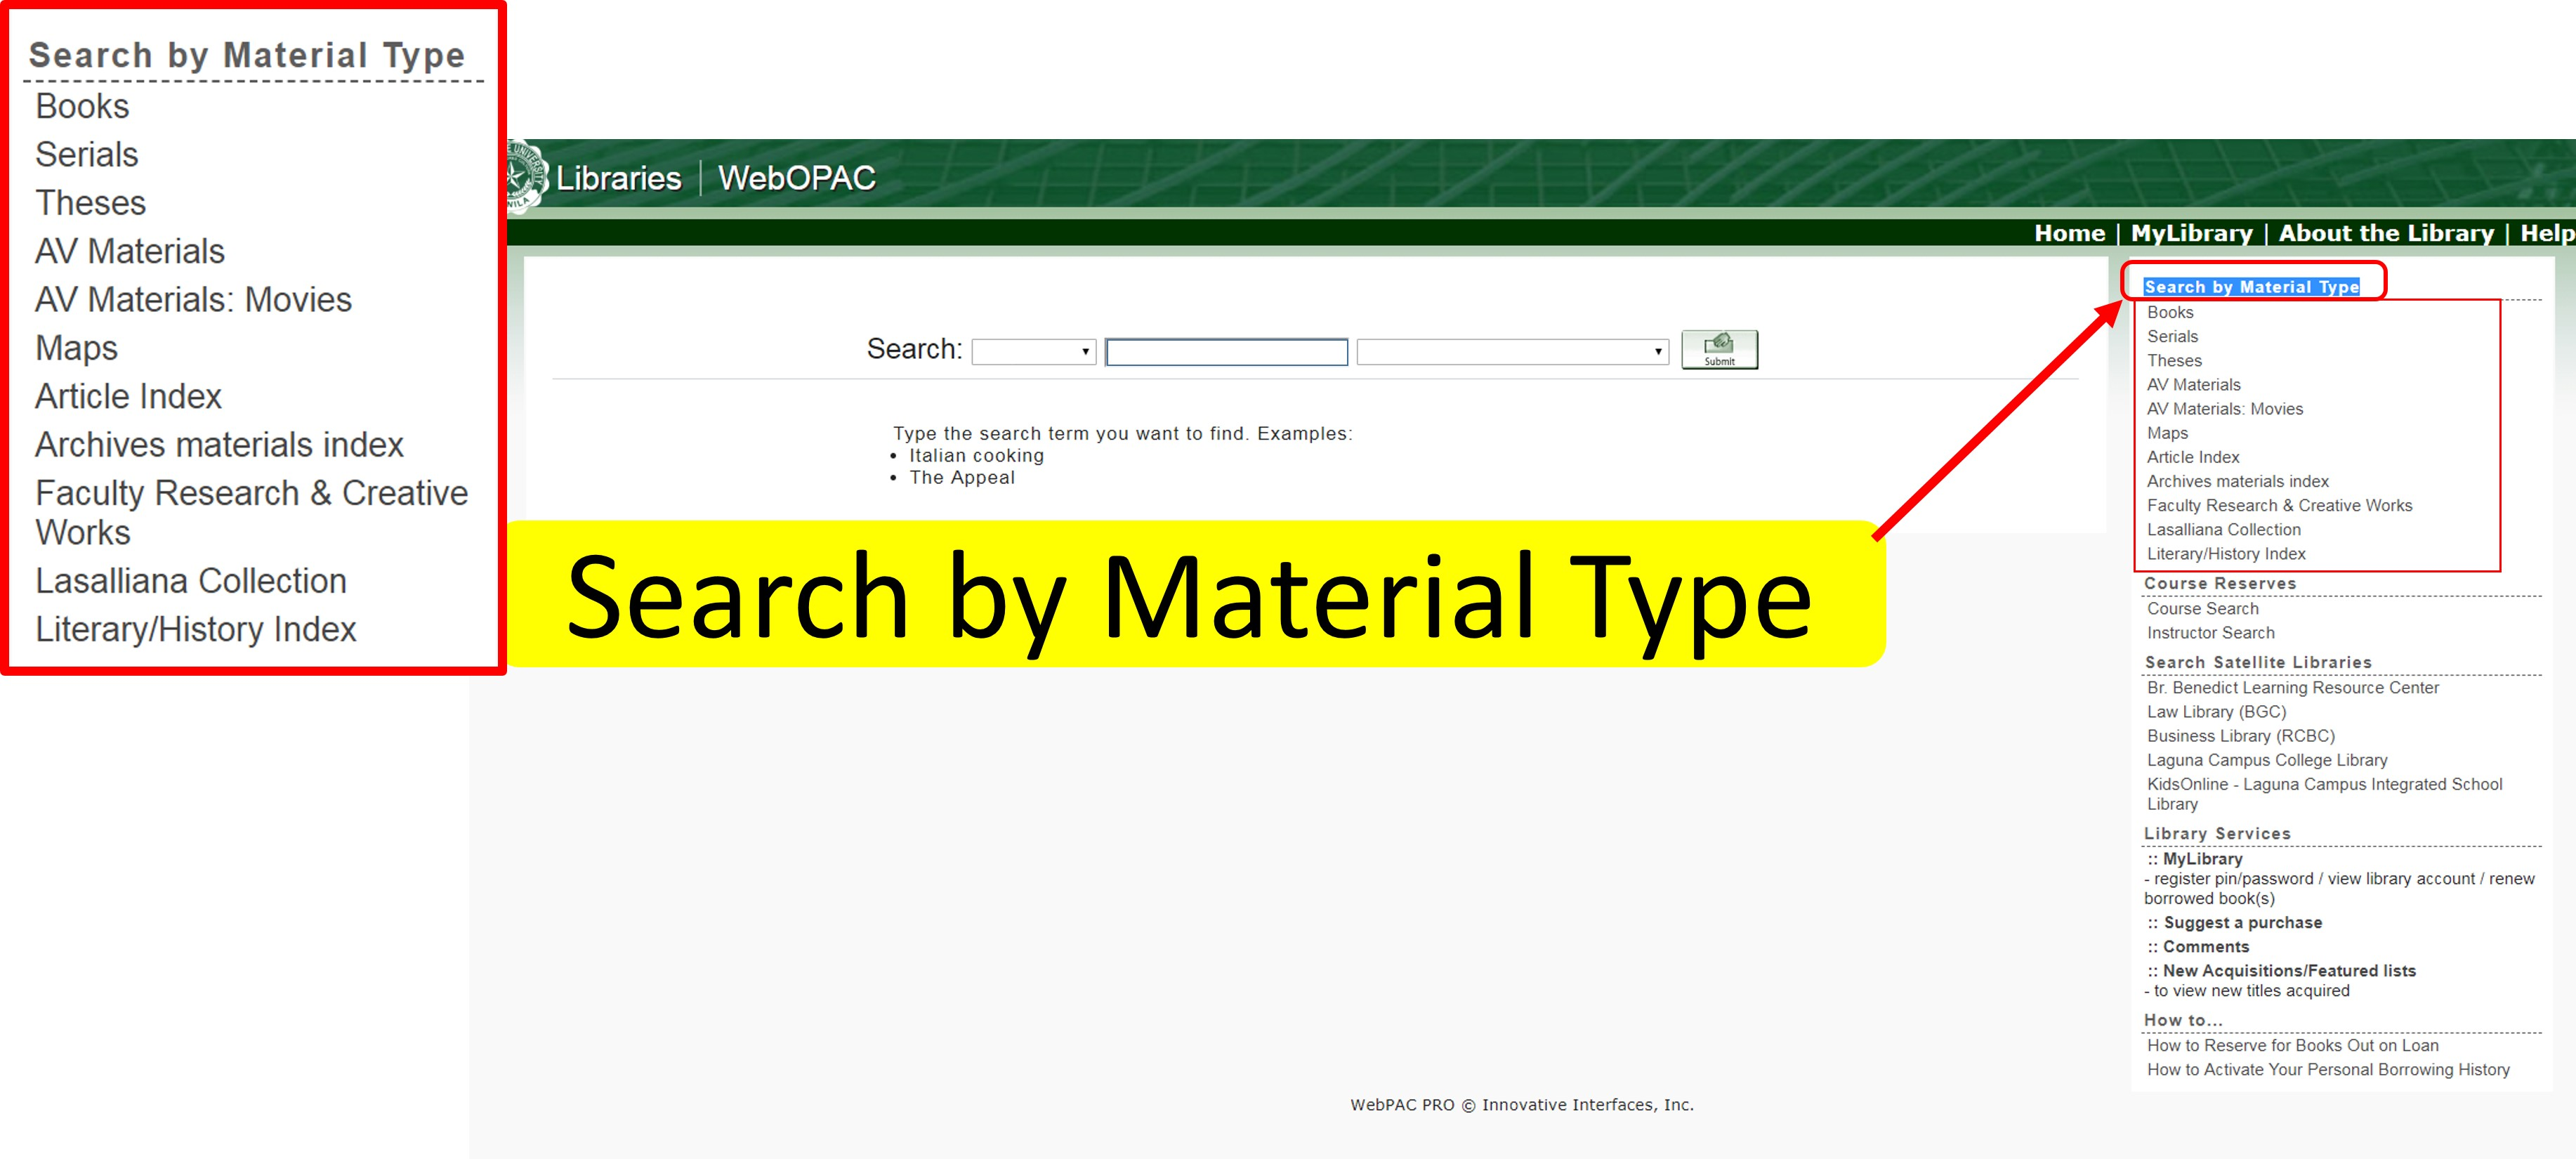 How to filter results using WebOPAC: Search by Material Type